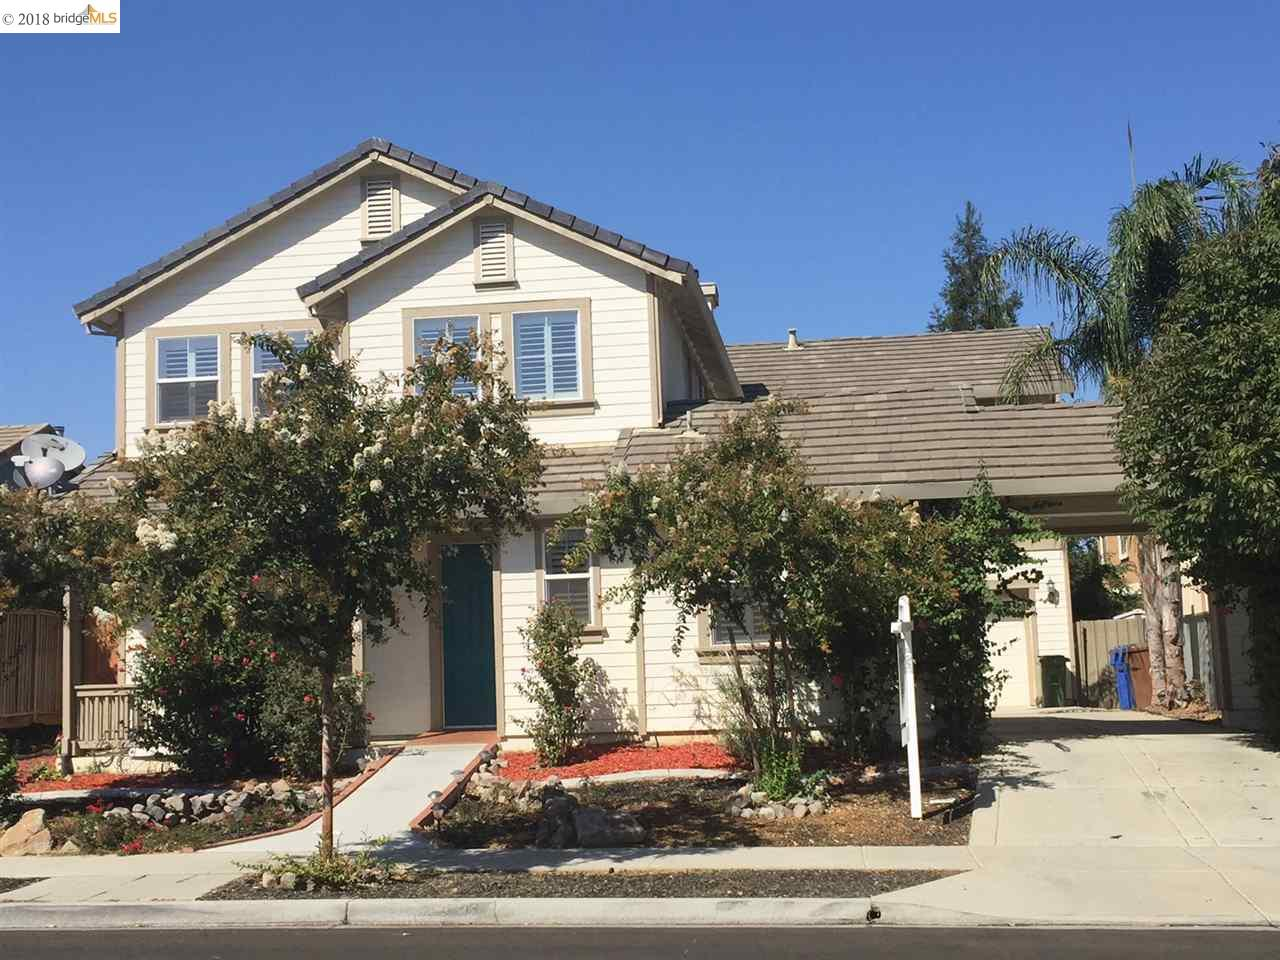 161 Continente Ave, BRENTWOOD, CA 94513